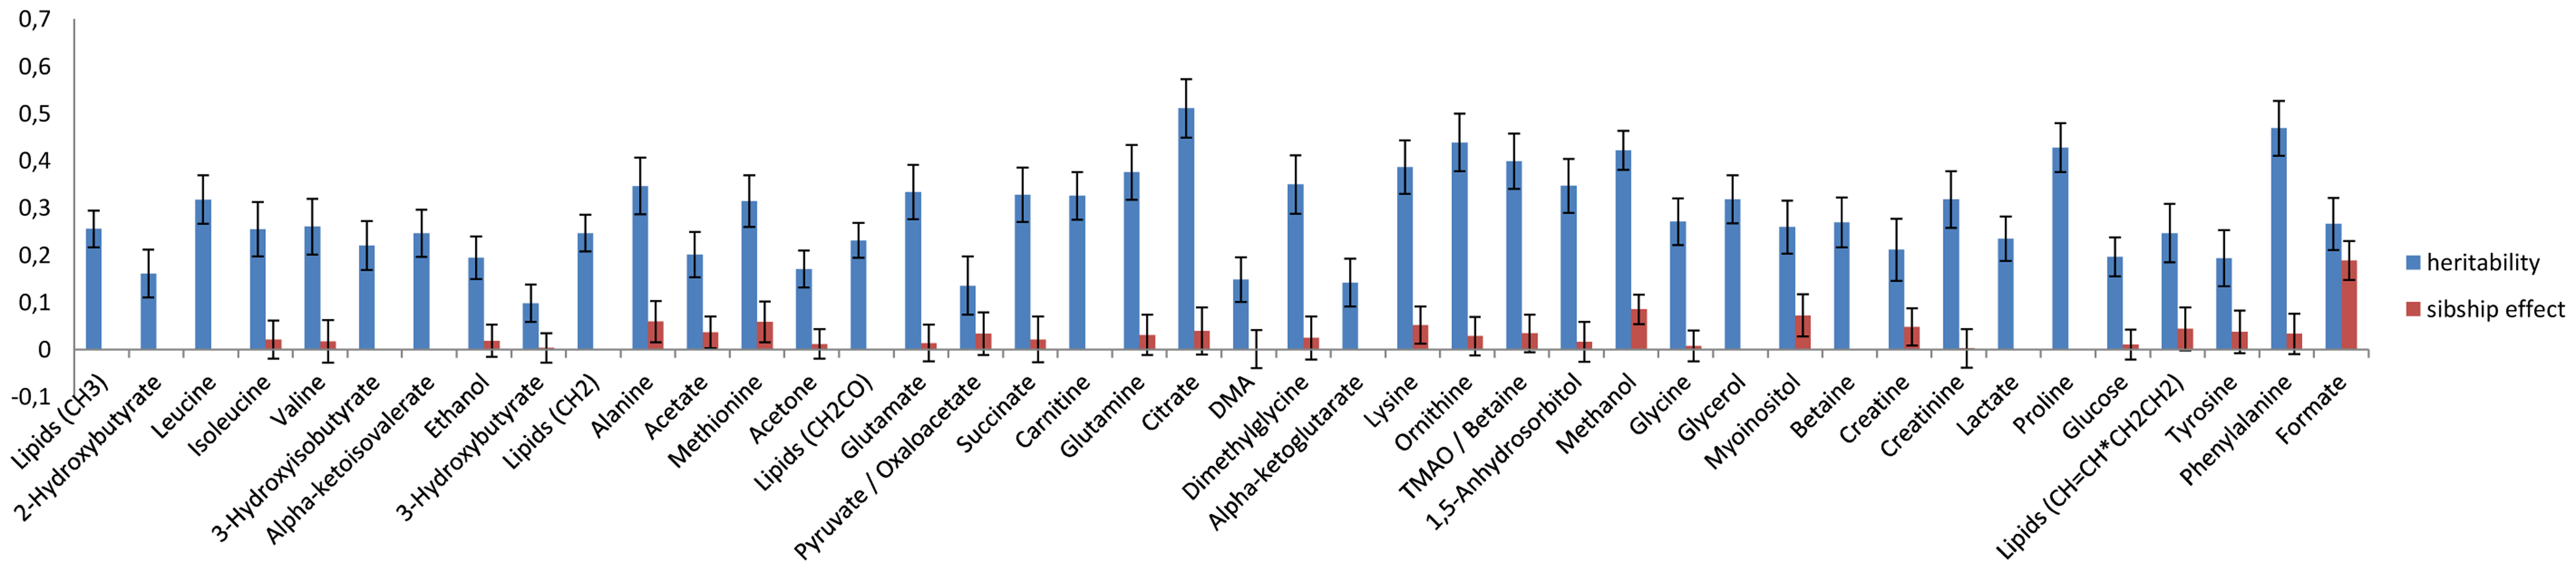 Heritability and sibship effects on the NMR metabolites.